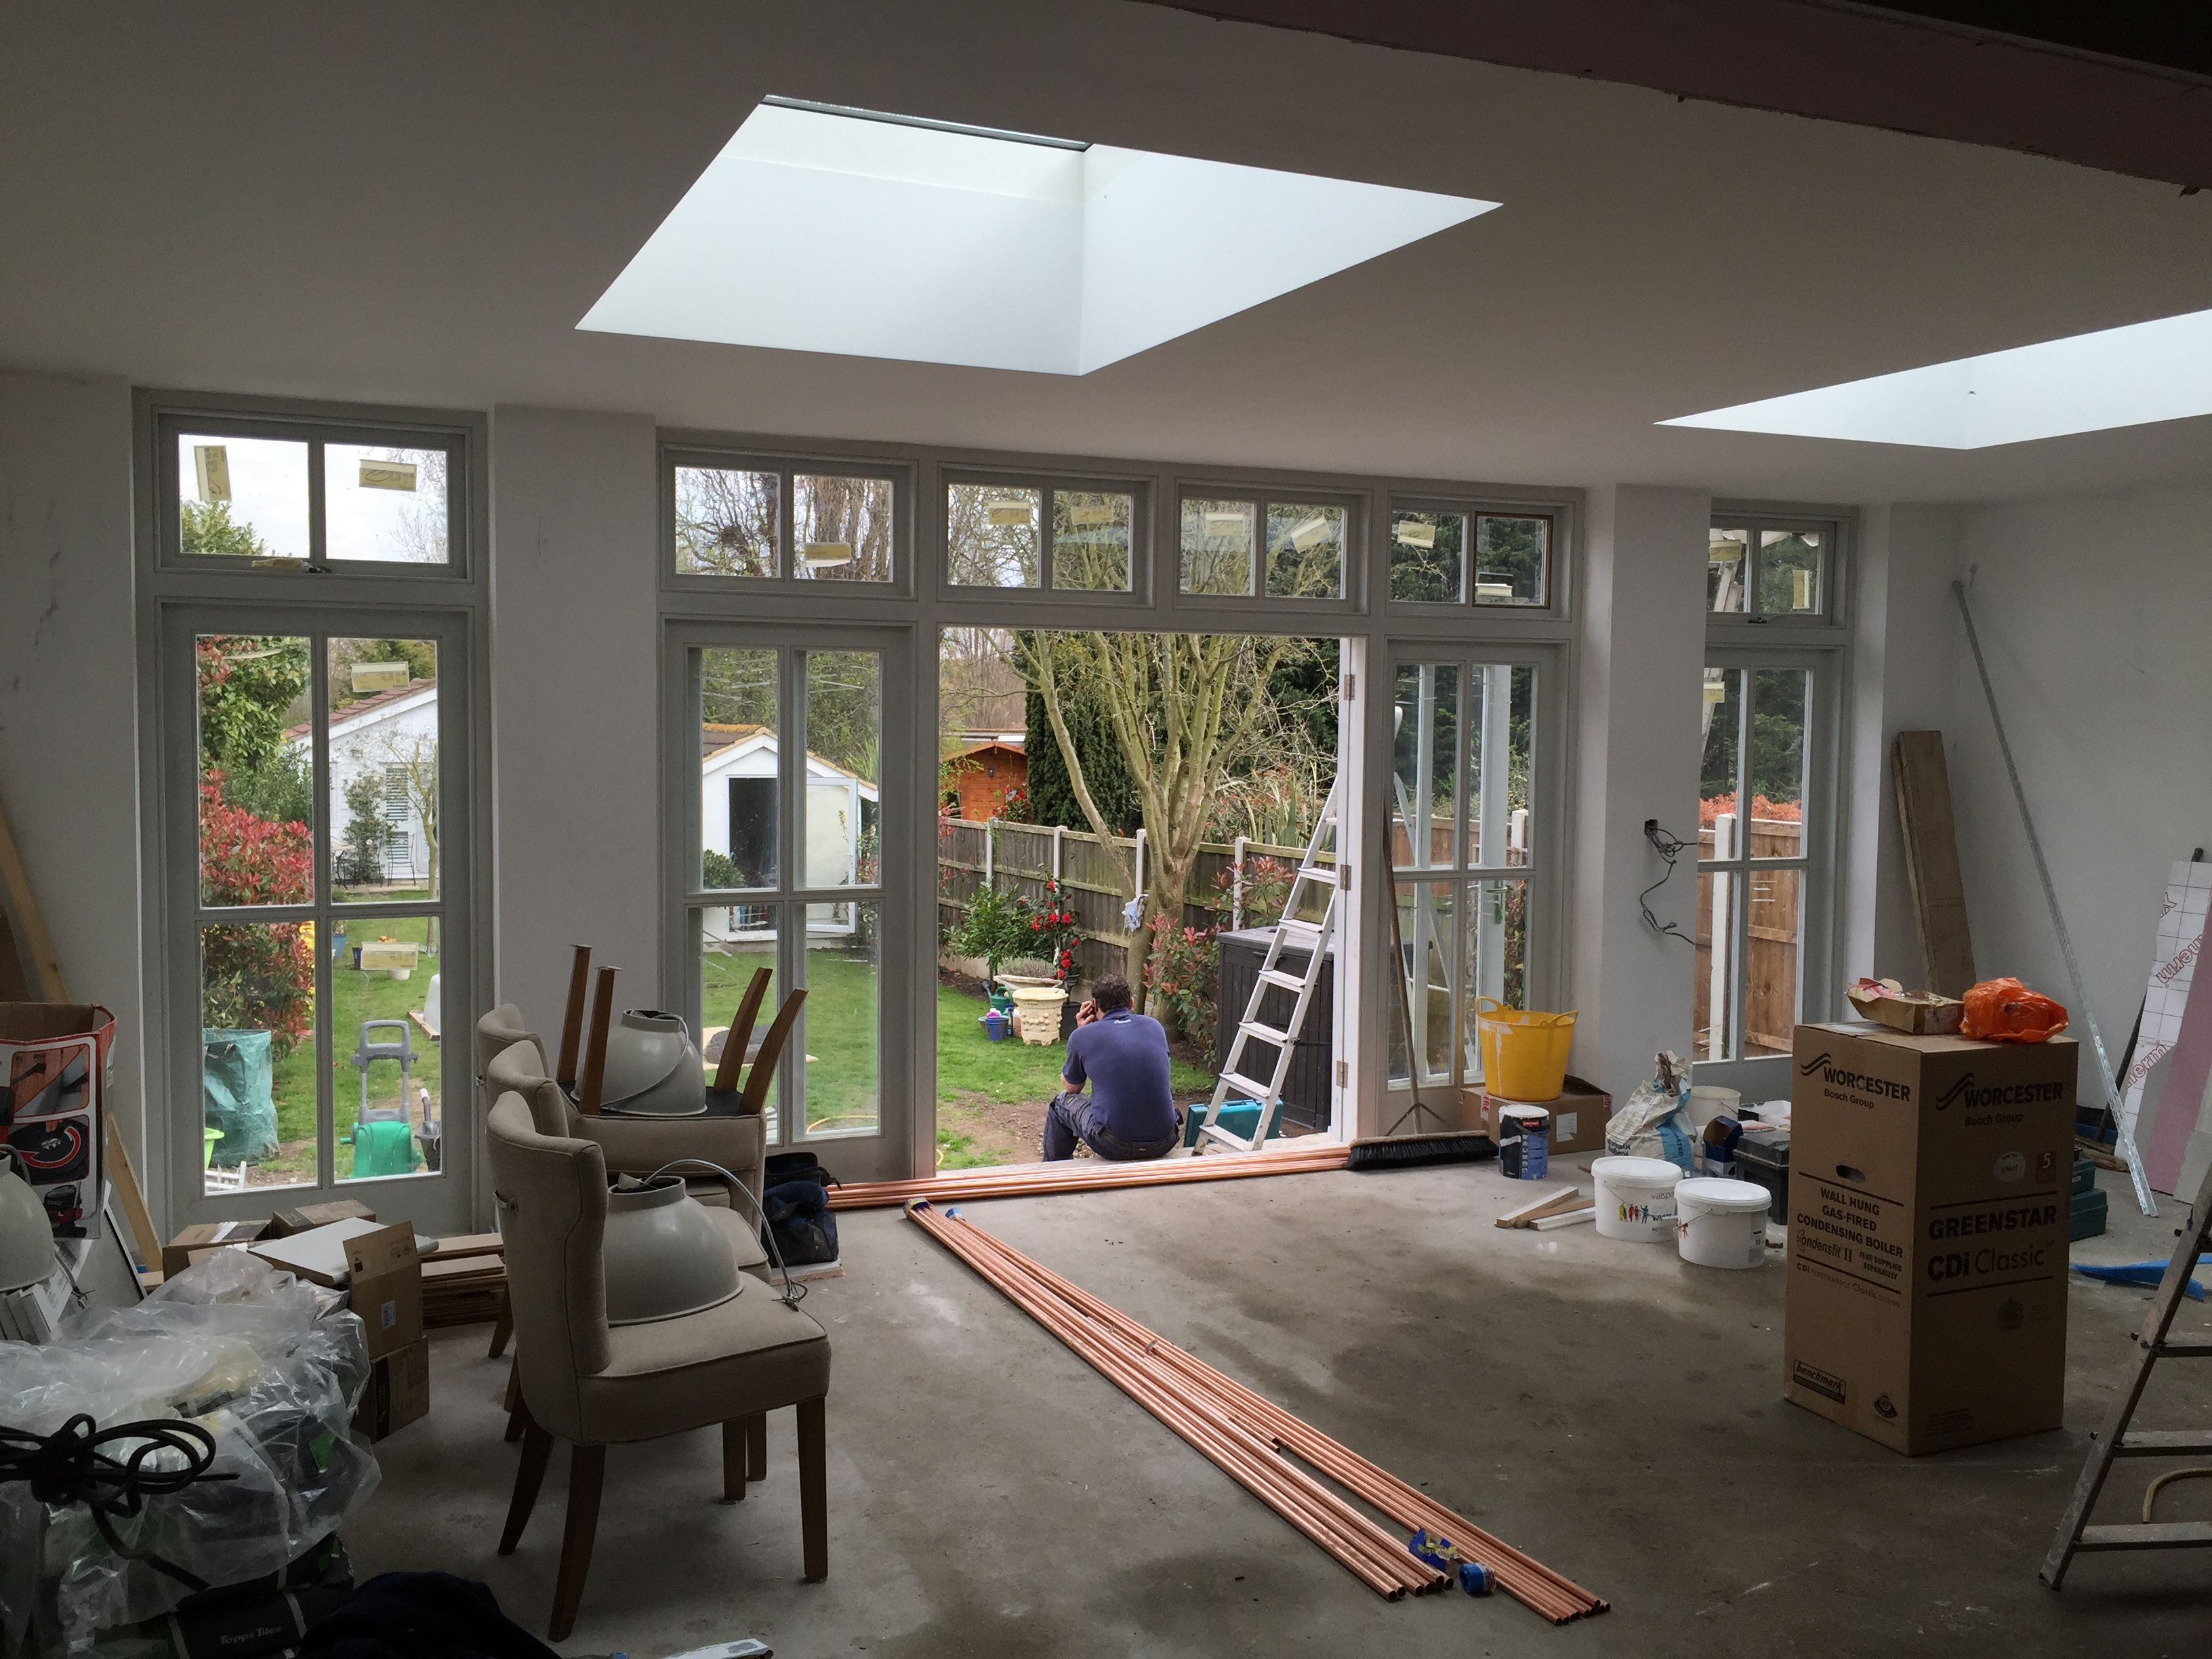 Flat extension roof idea flat roof skylights flat extension roof idea - Current Project Single Storey Rear Extension Amazing Wooden External Doors And Large Flat Roof Windows Rear Extensionextension Ideasorangery